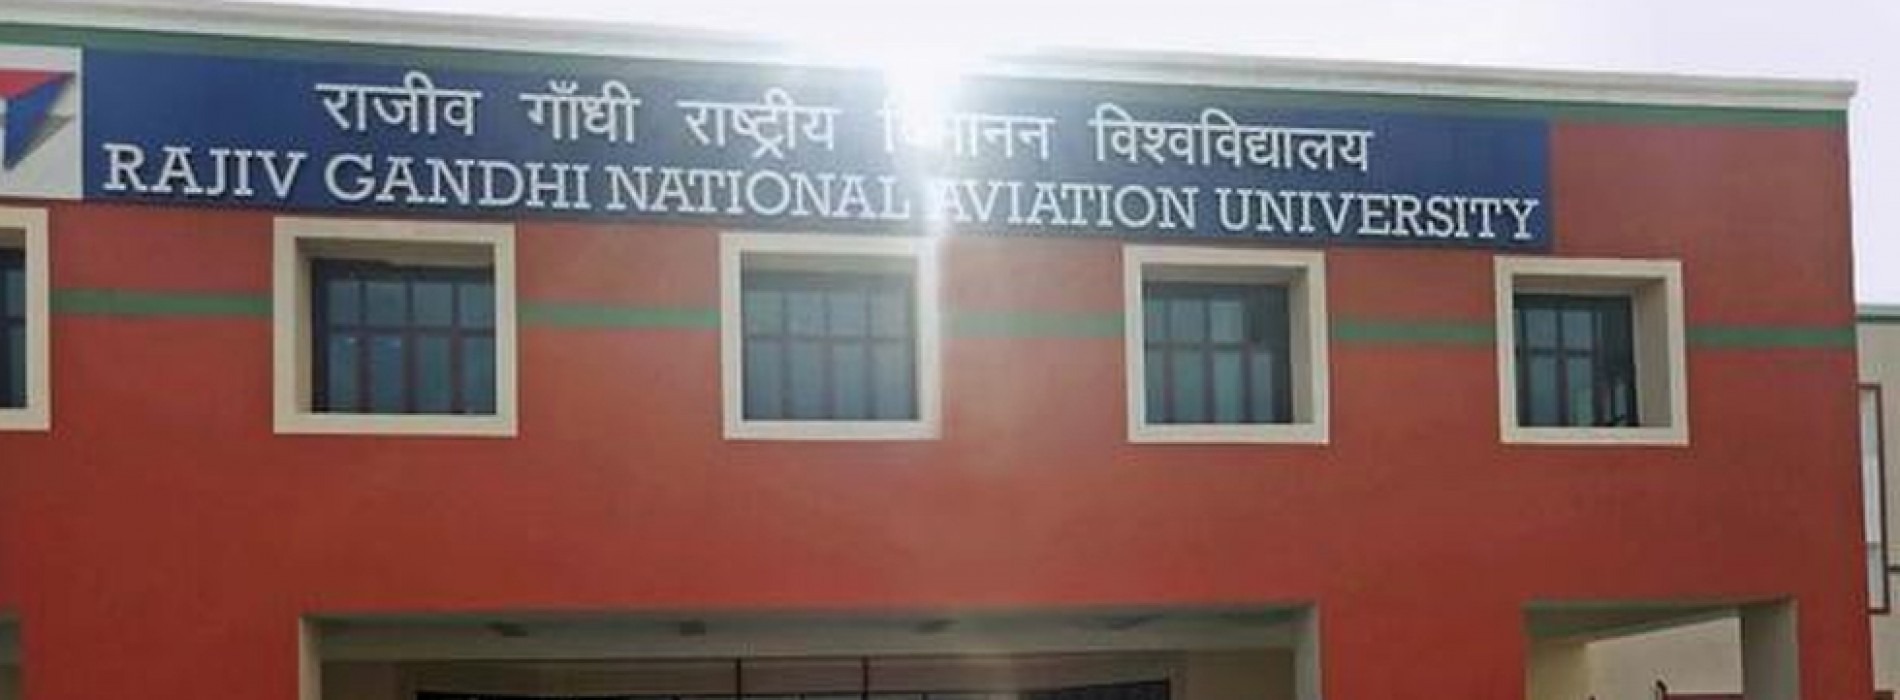 Inauguration of India's first aviation University is postponed